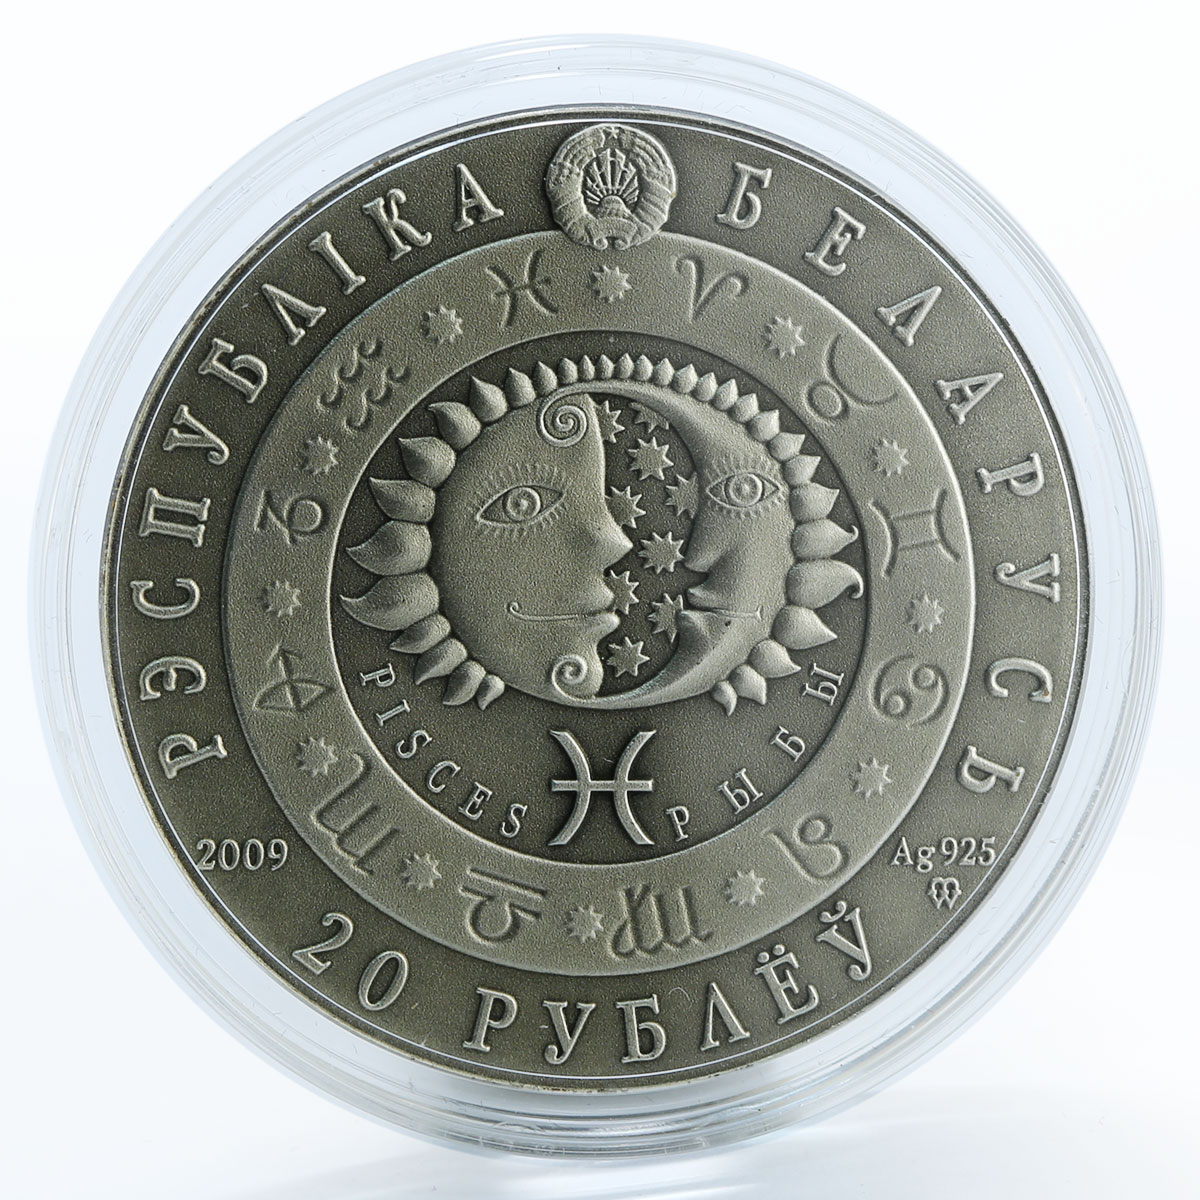 Belarus 20 rubles, Zodiac Signs, Pisces, silver, zircons, coin, 2009